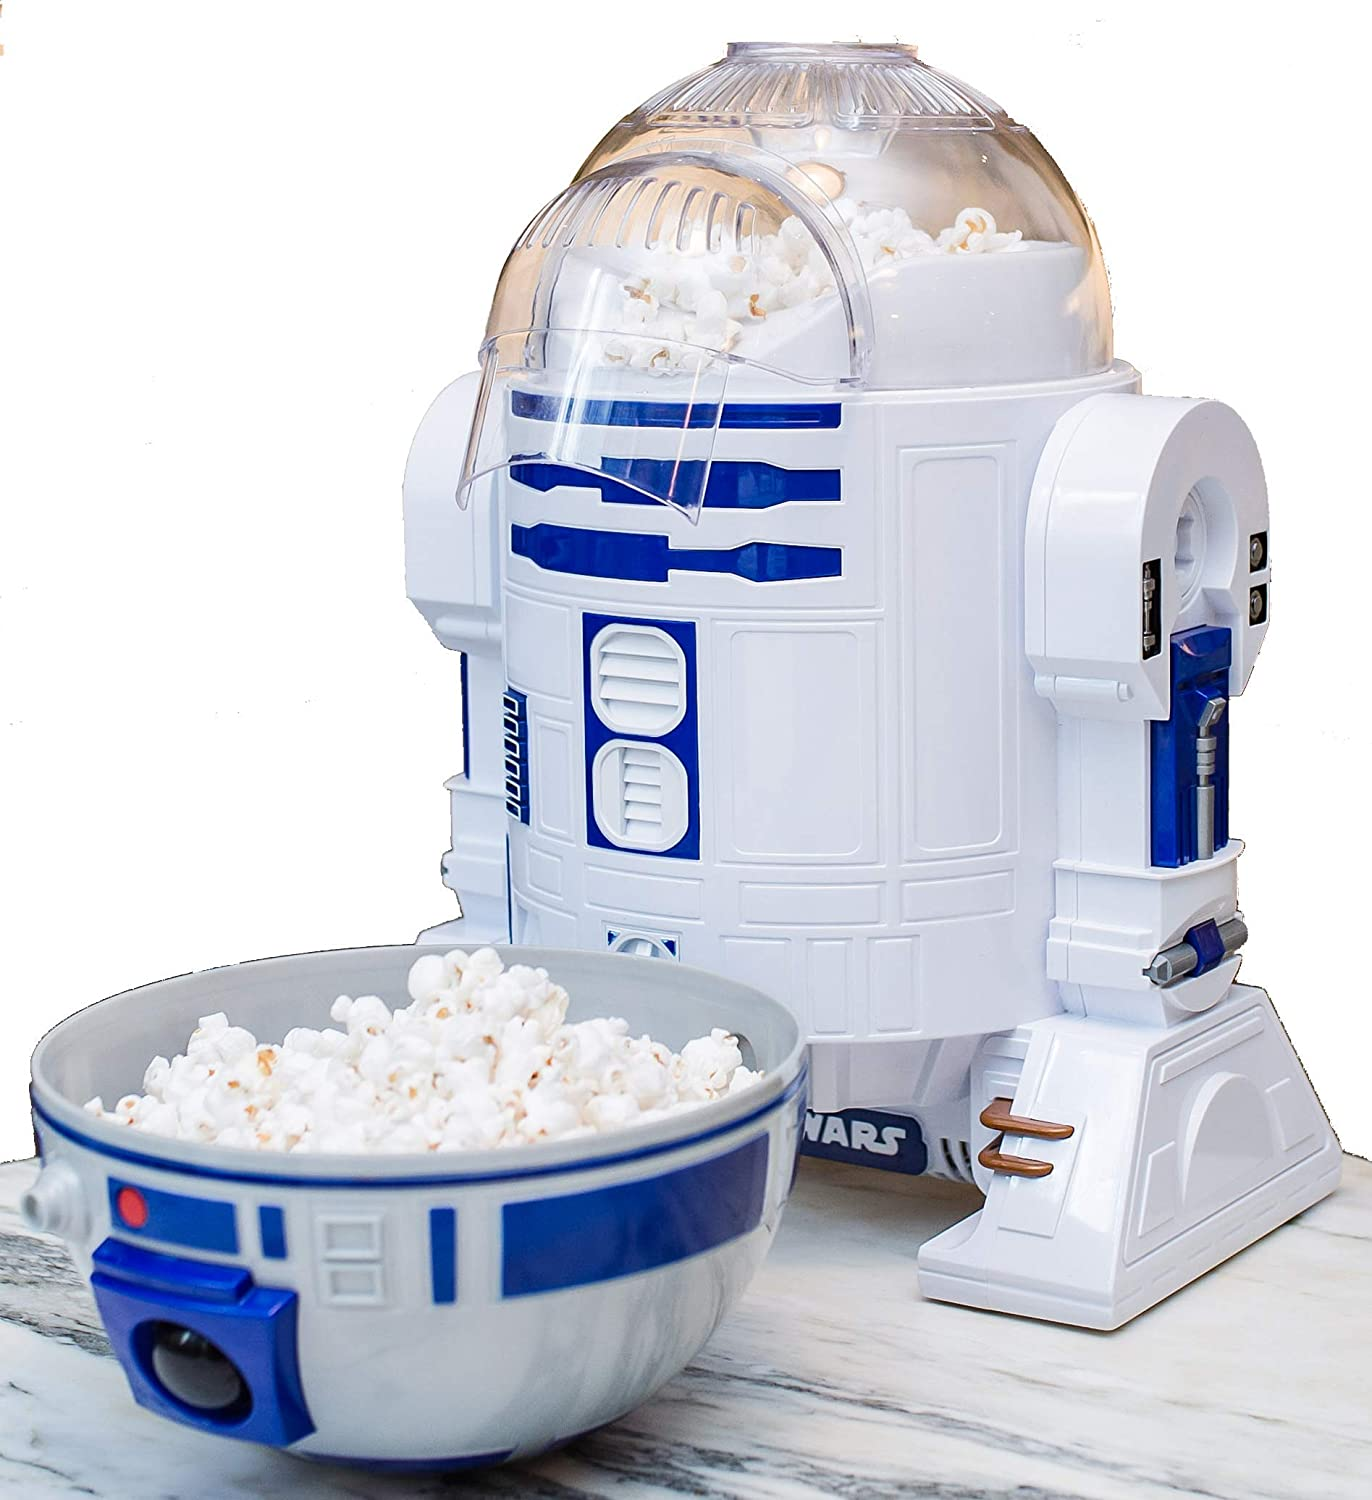 Uncanny Brands Star Wars R2D2 Popcorn Maker- Fully Operational Droid Kitchen Appliance